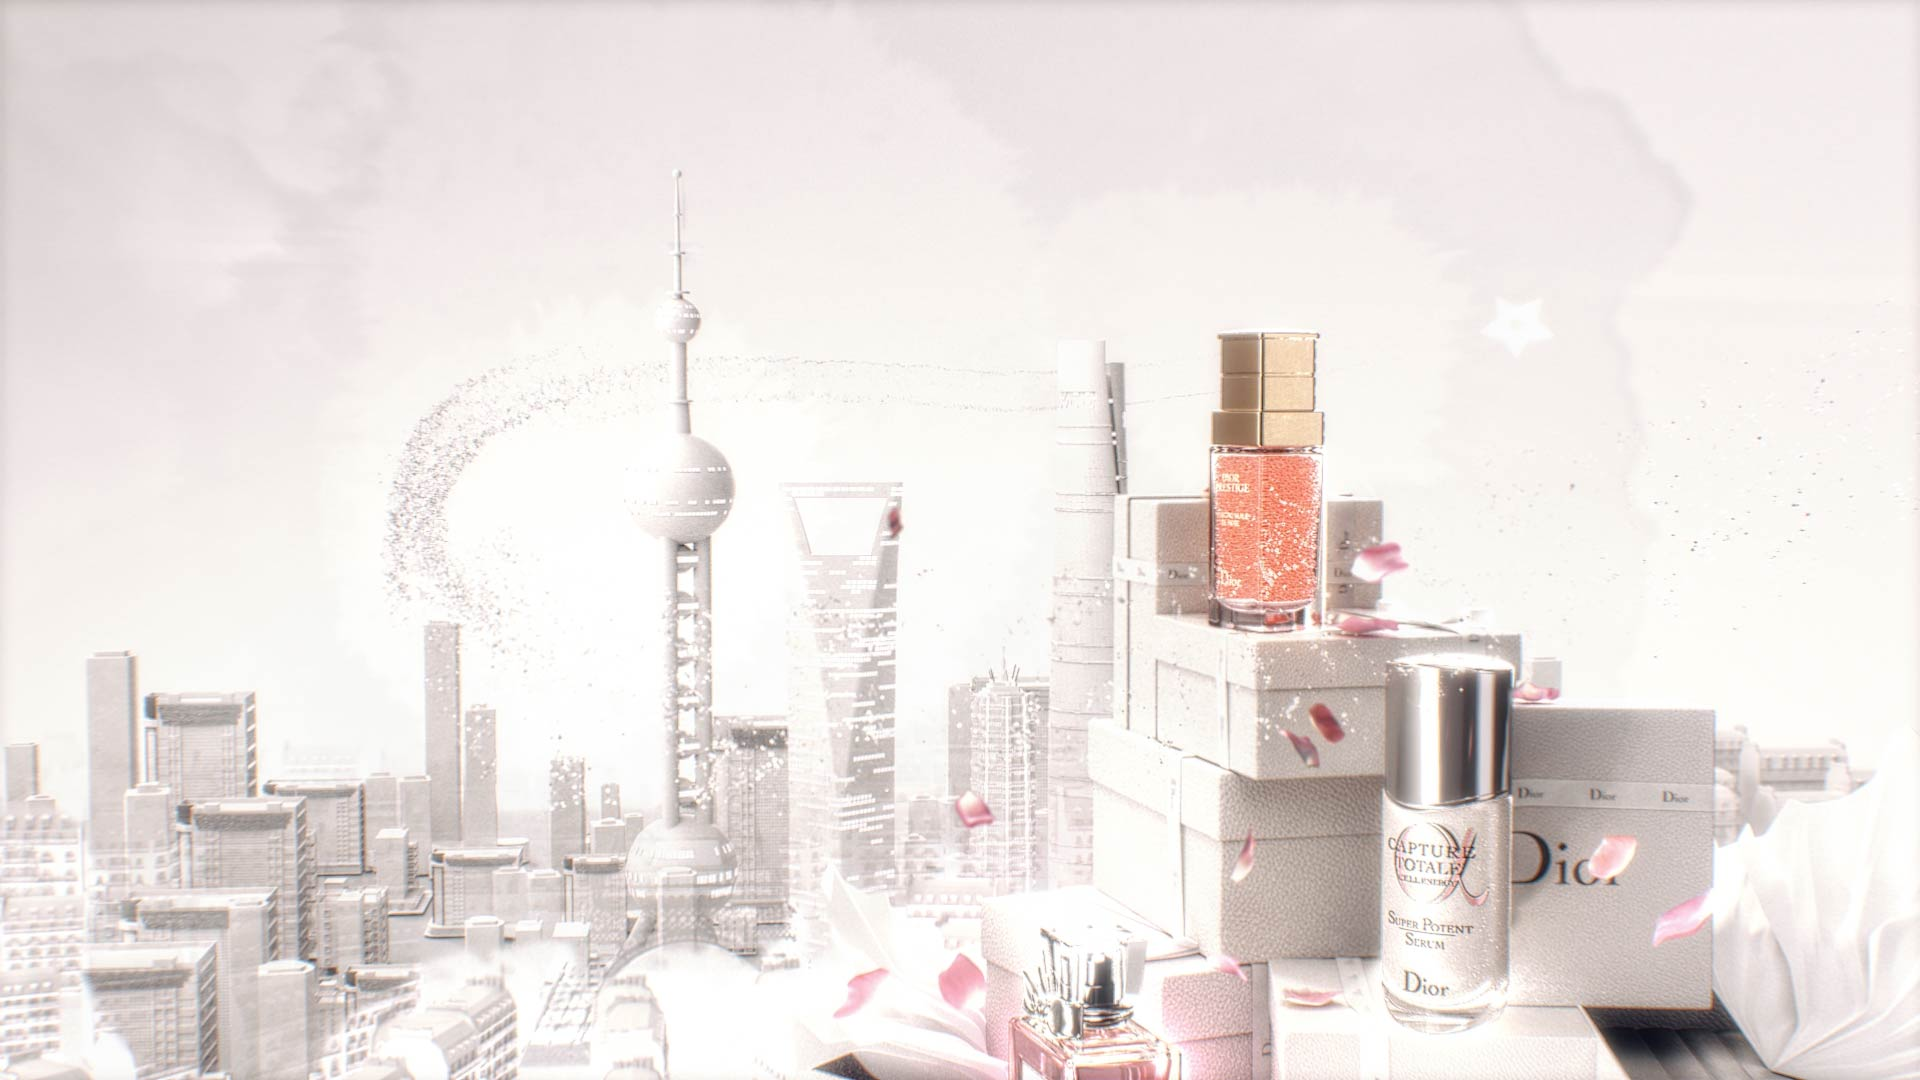 3D Motion Design with Dior products on top of gift boxes with Shangai in the background